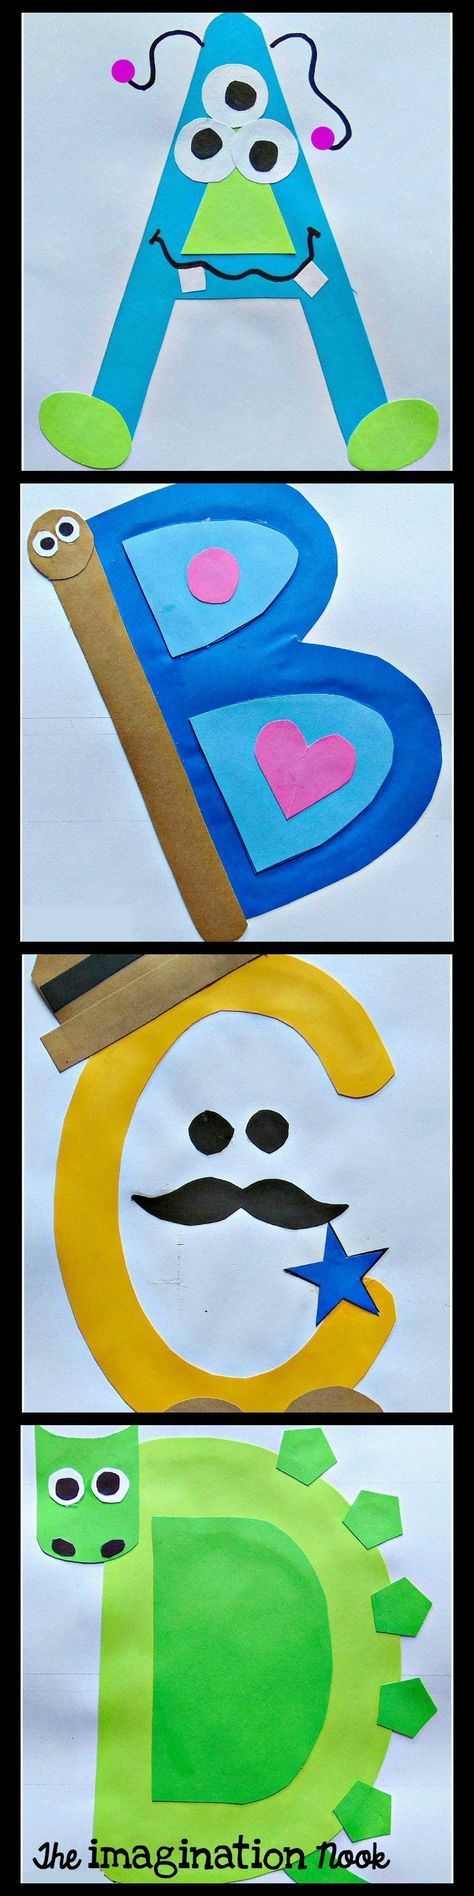 Engaging alphabet book from A to Z. Fun to make capital letter crafts.